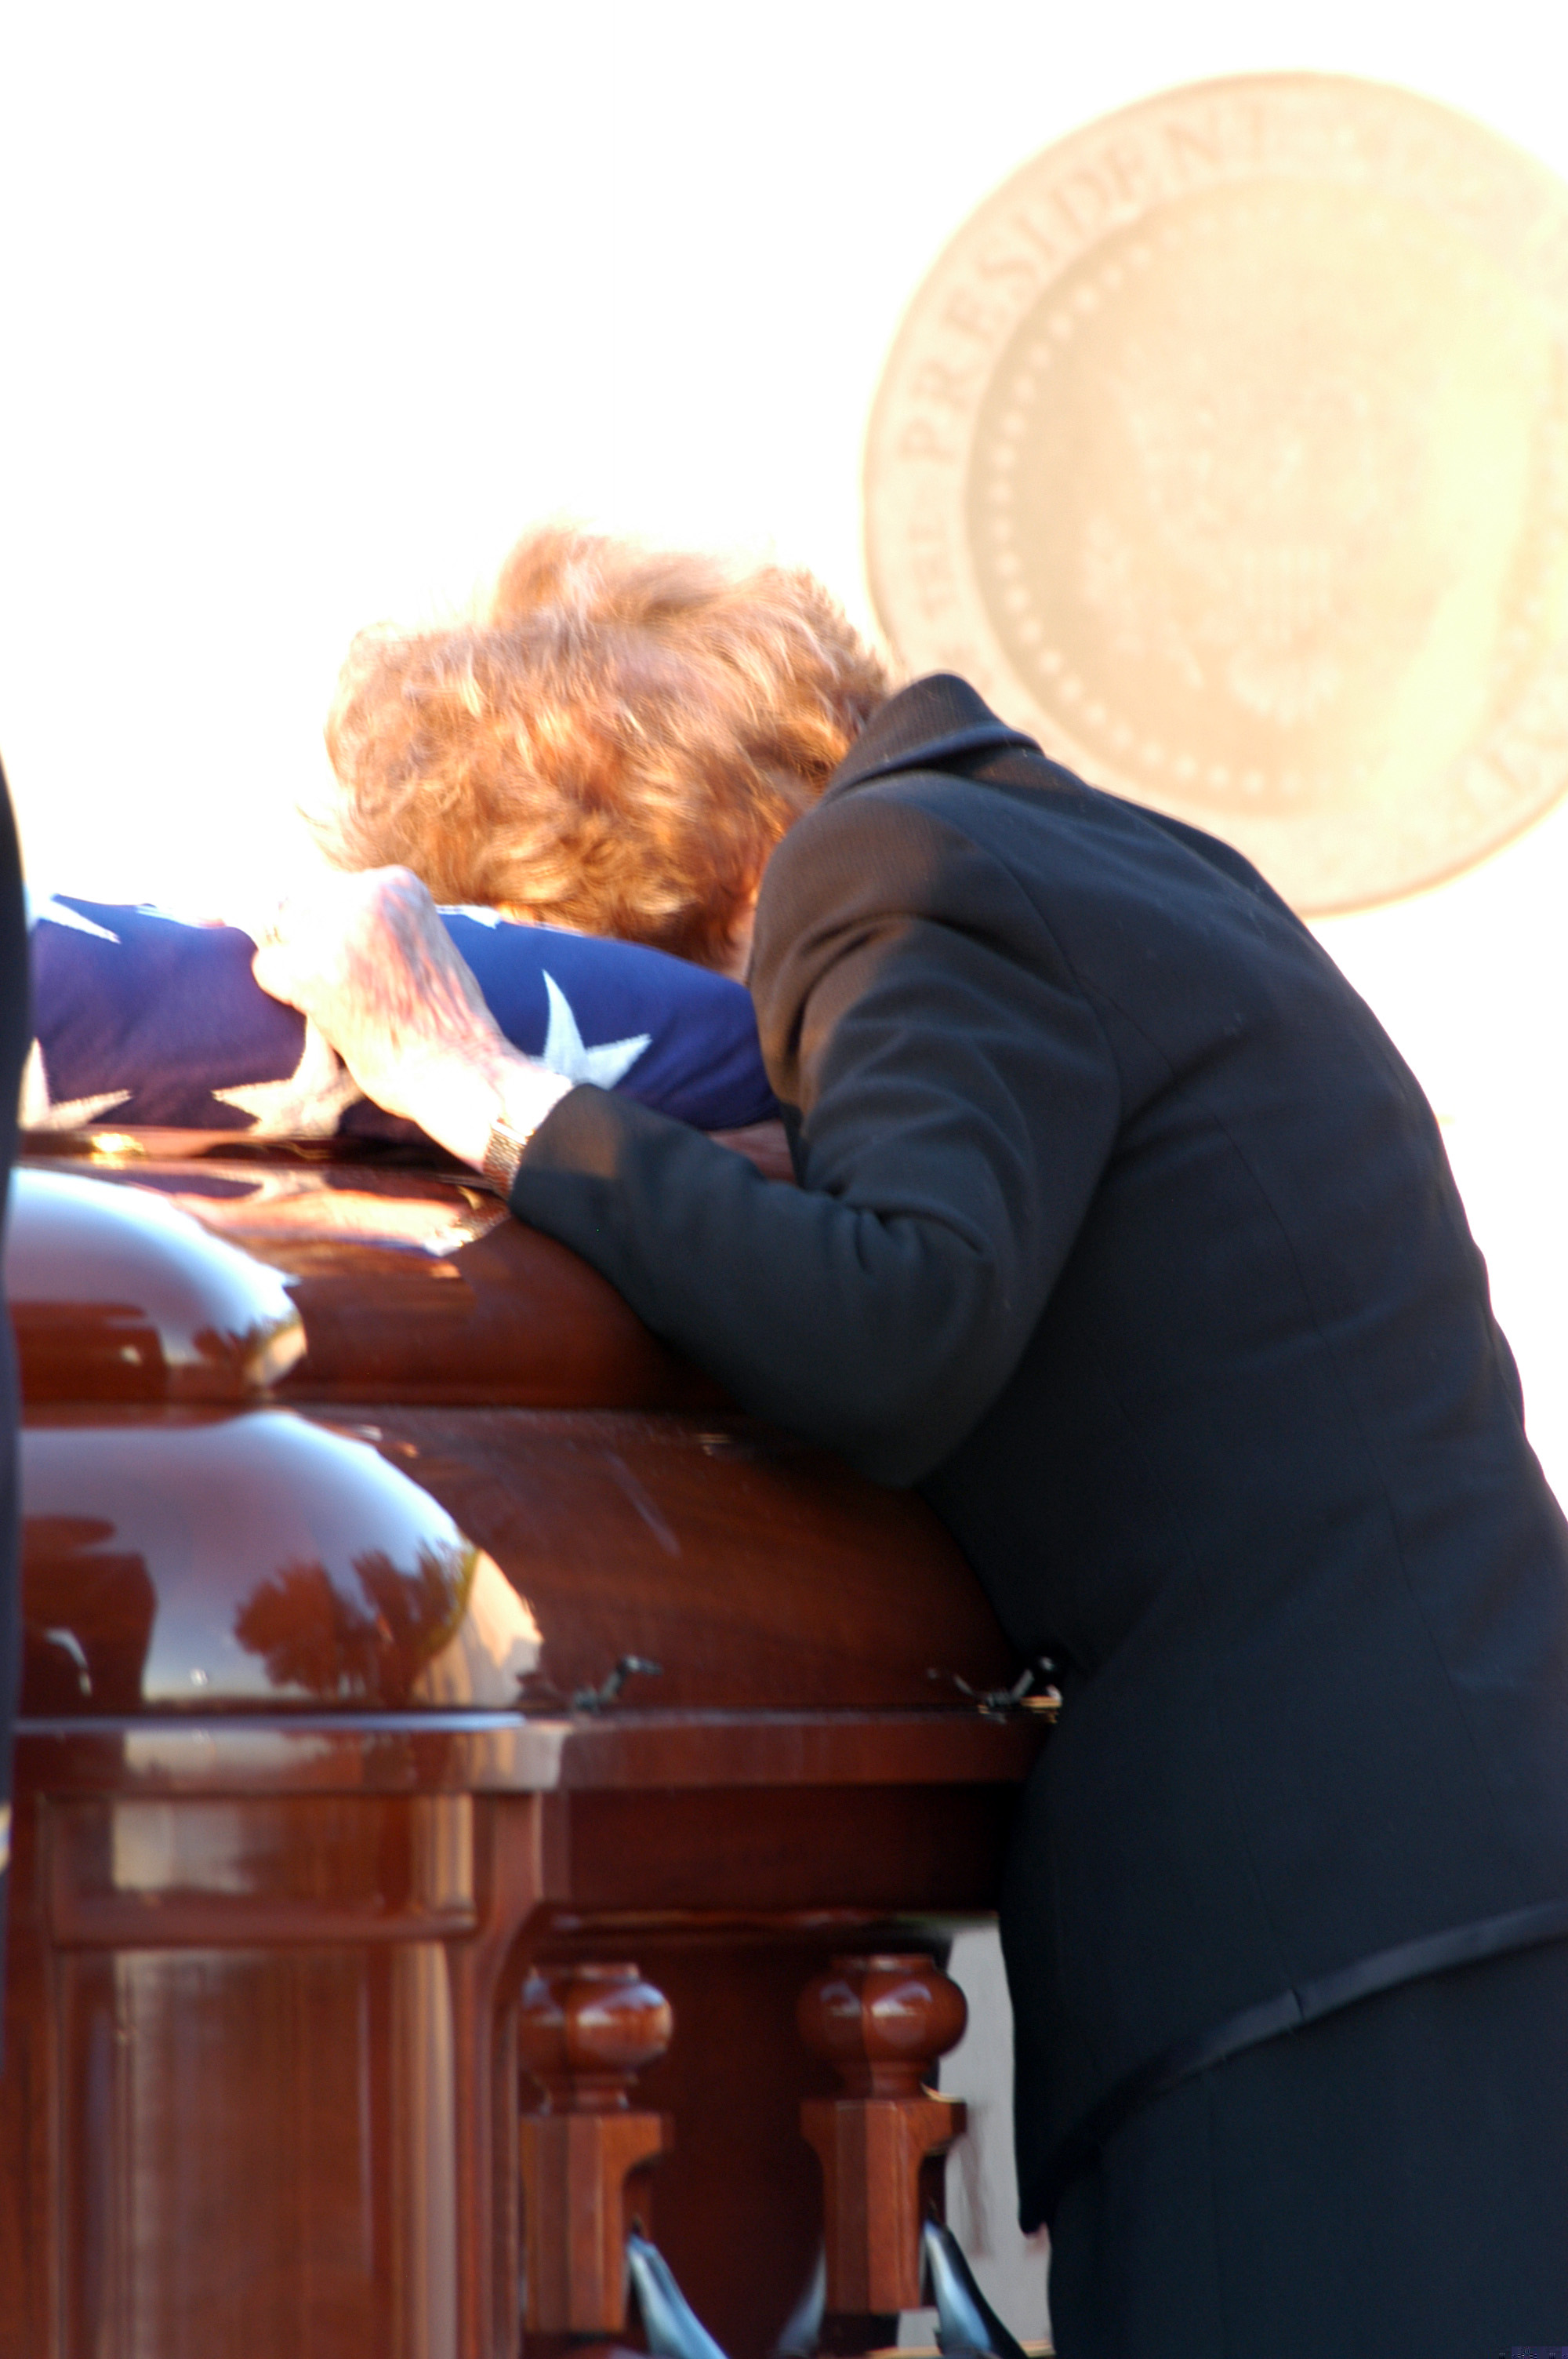 nancy reagan at her husband's casket